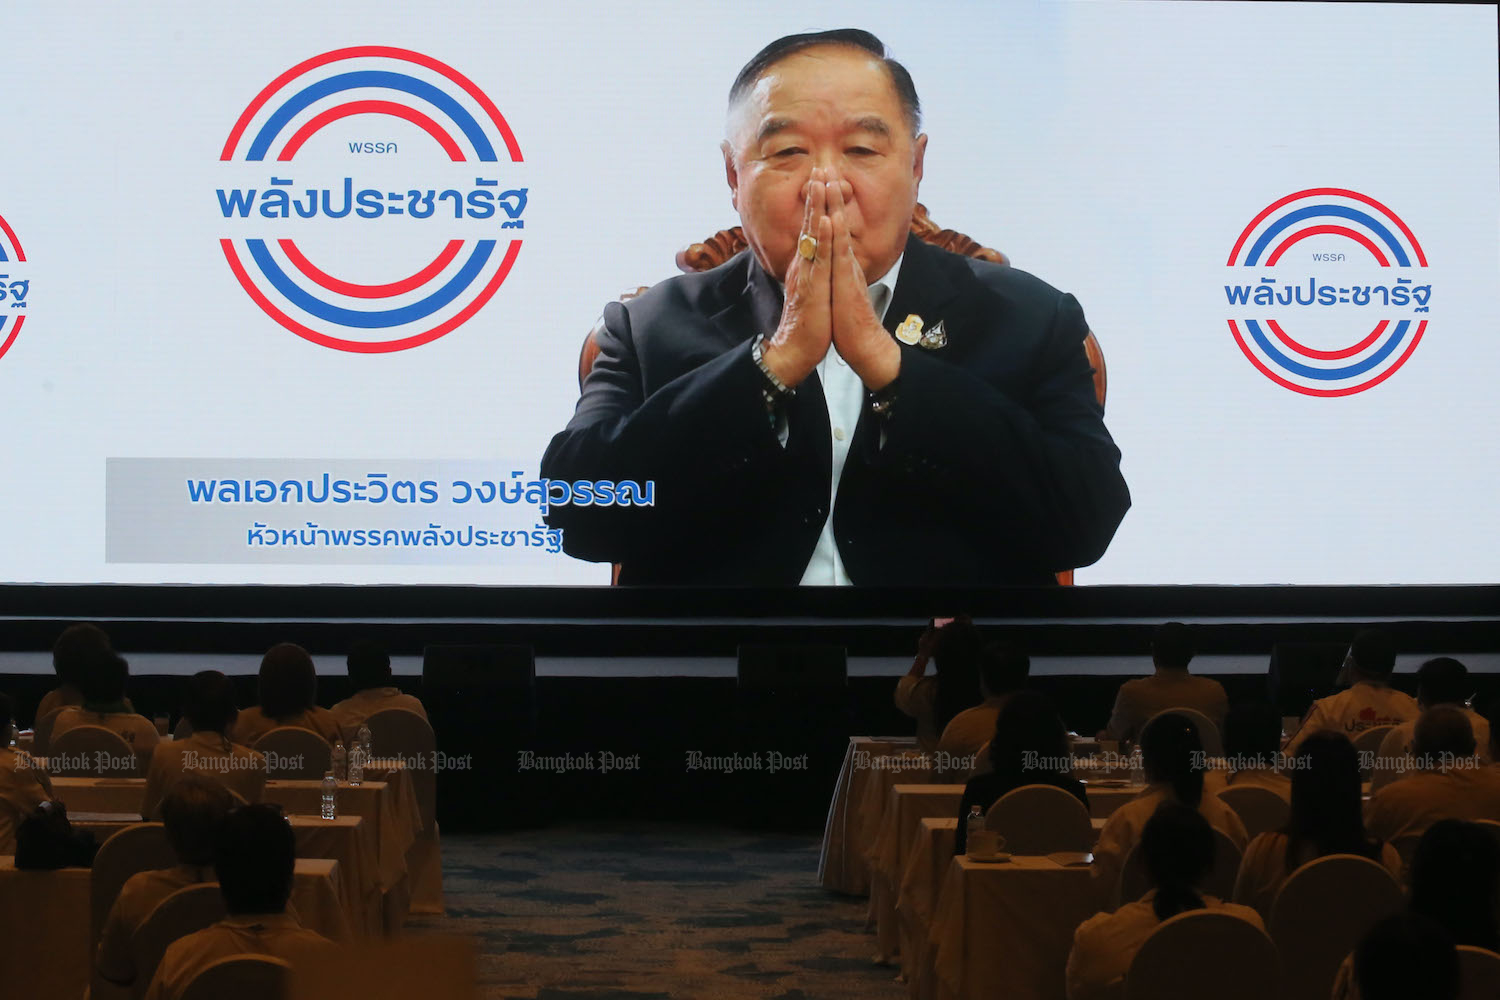 Gen Prawit Wongsuwon, who did not attend the PPRP meeting at Impact Muang Thong Thani, thanks his supporters onscreen after they elected him as leader on Saturday. (Photo by Wichan Charoenkiatpakul)